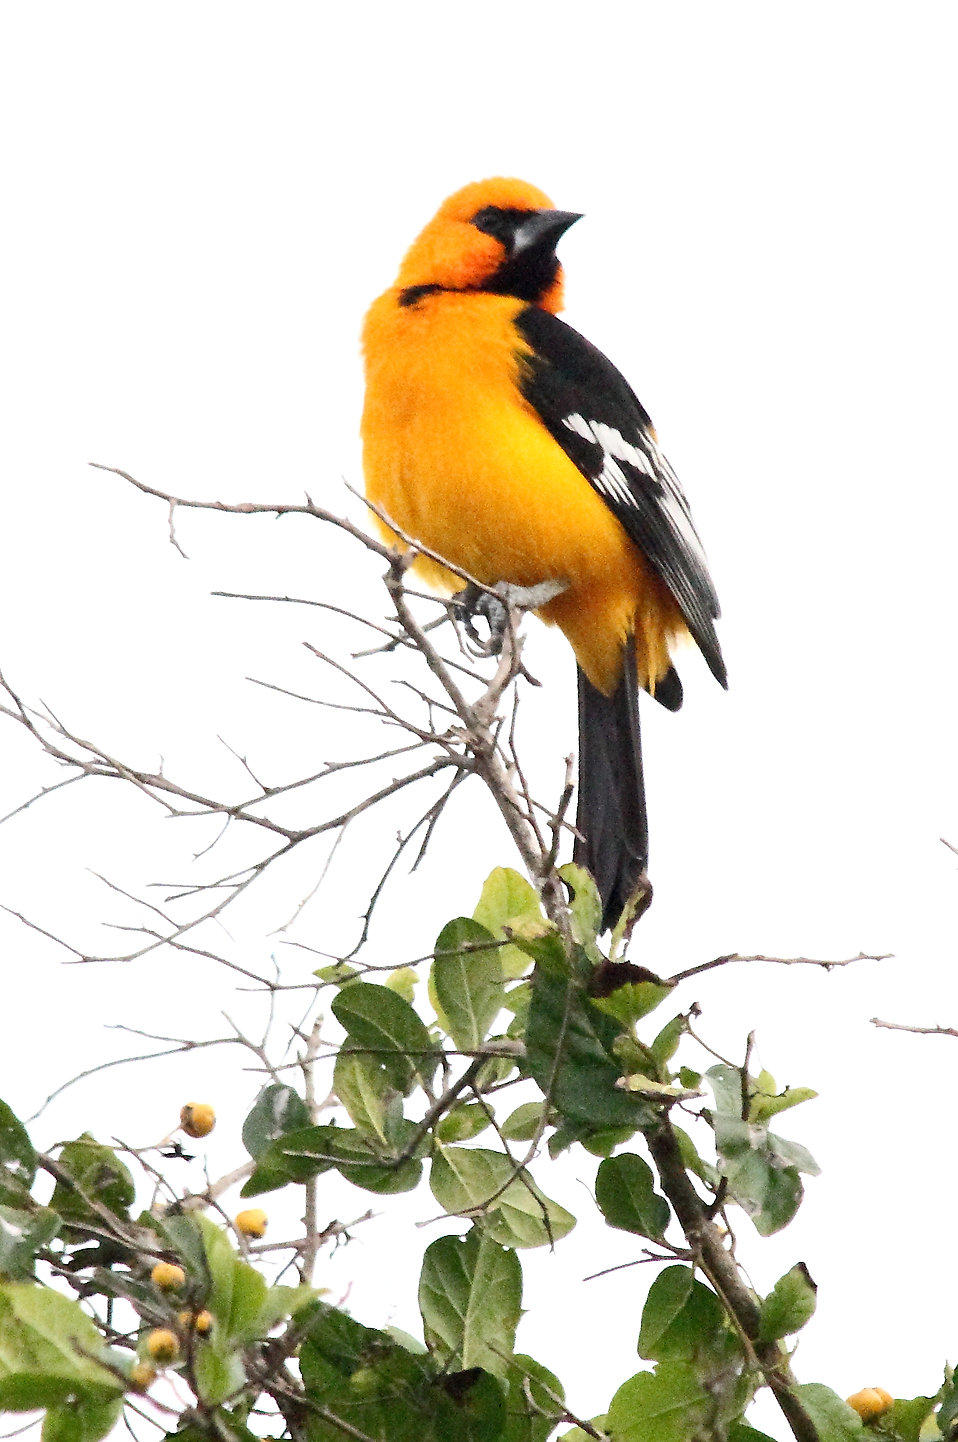 Close-up of an Altamira Oriole bird : Free Stock Photo